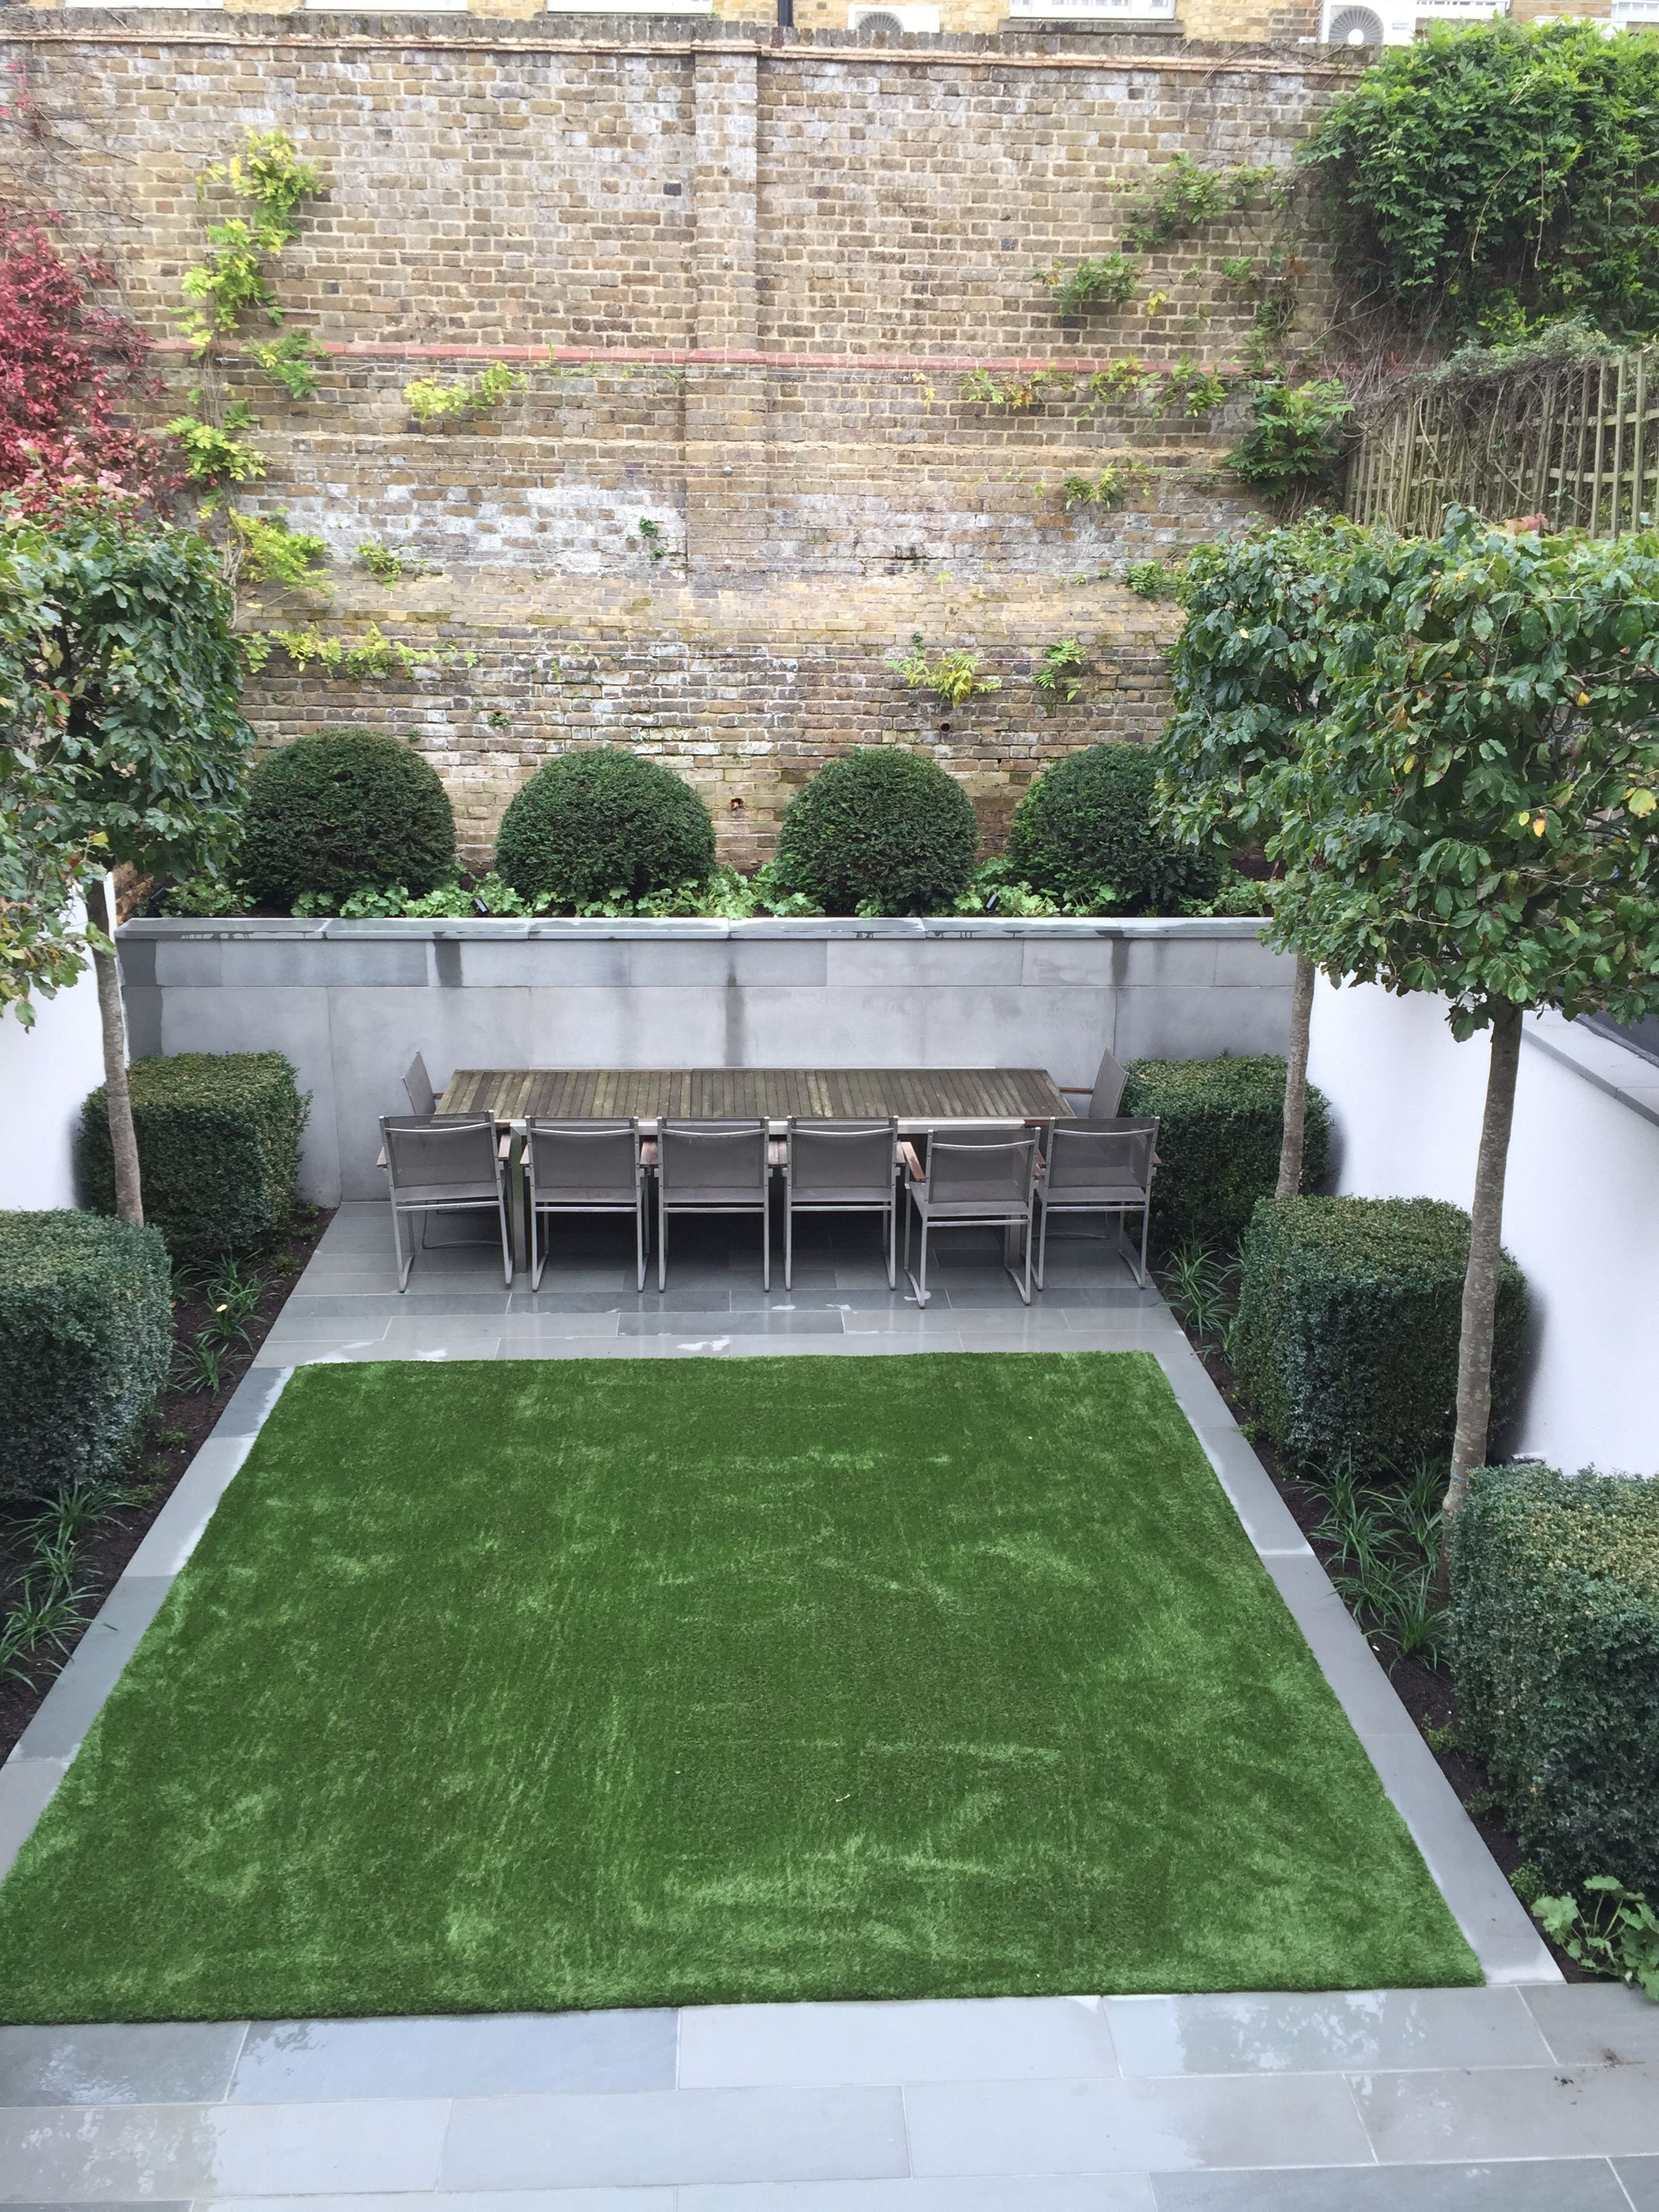 BUTTER WAKEFIELD GARDEN DESIGN Created A Modern Formal Garden With Lots Of Simple Clipped Topiary Shapes And Clean Lines